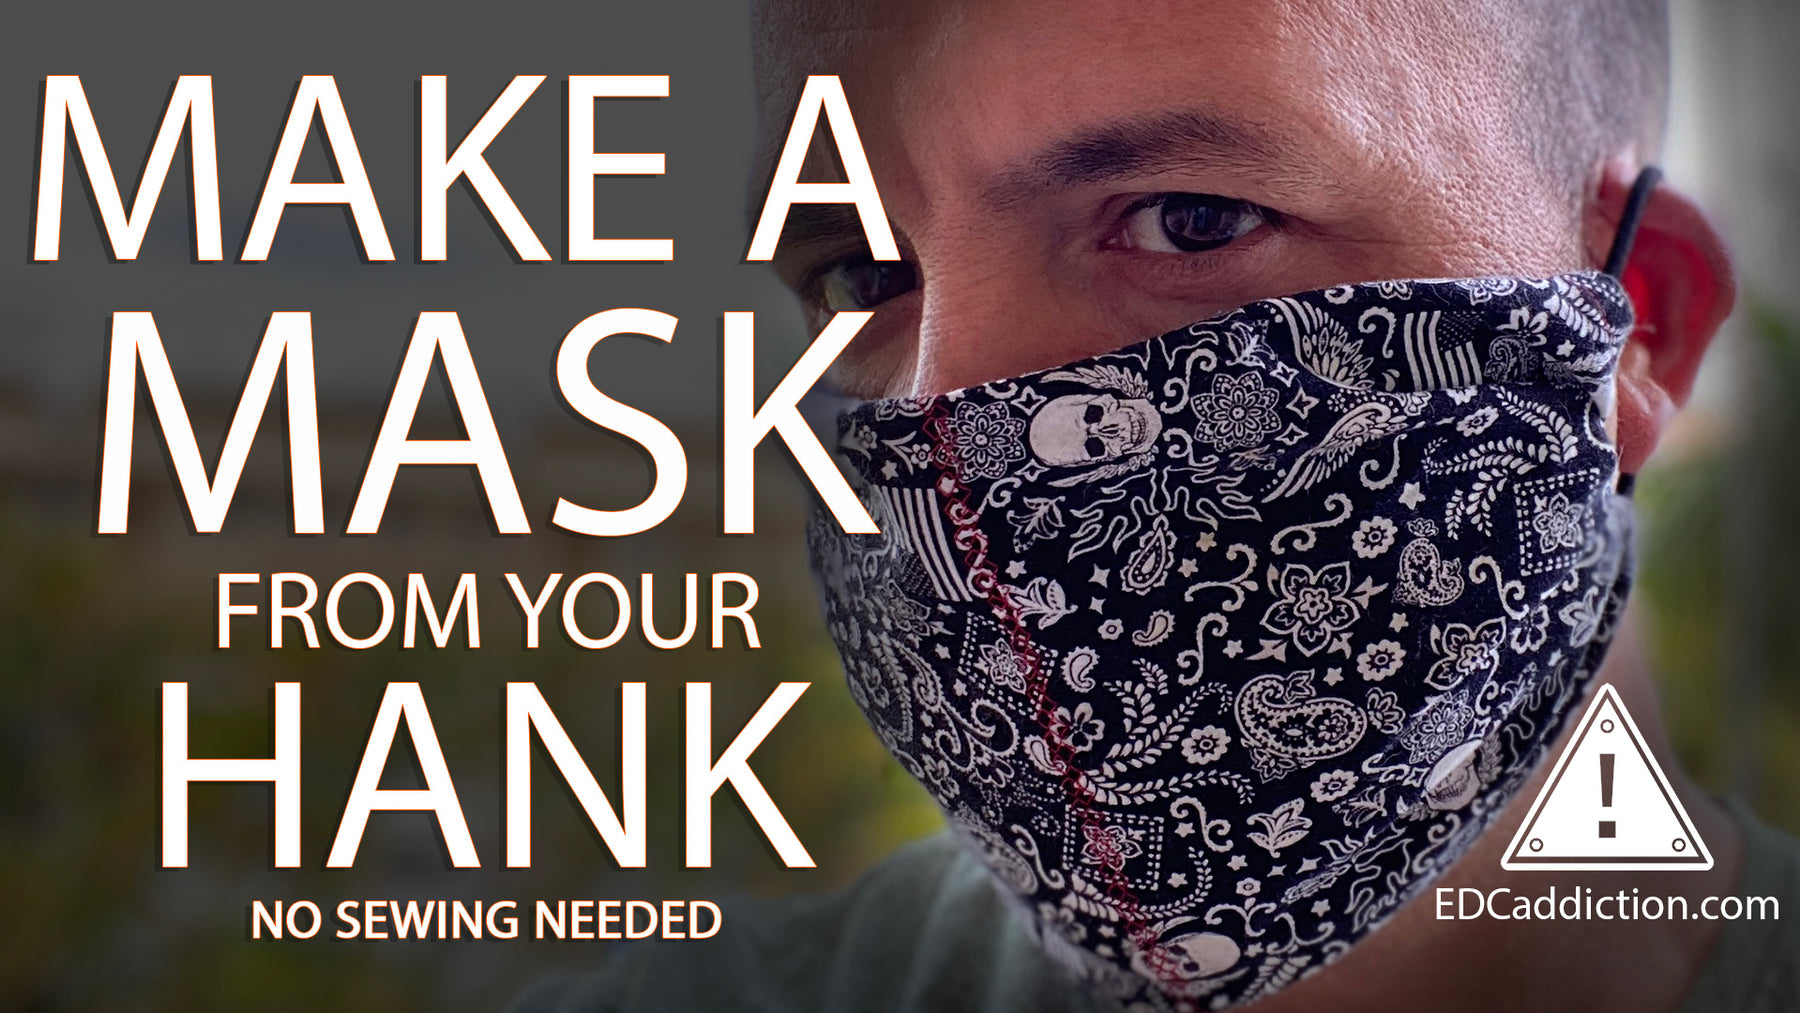 A No Sew Hank Mask: Make a mask from your hank (No sewing needed)